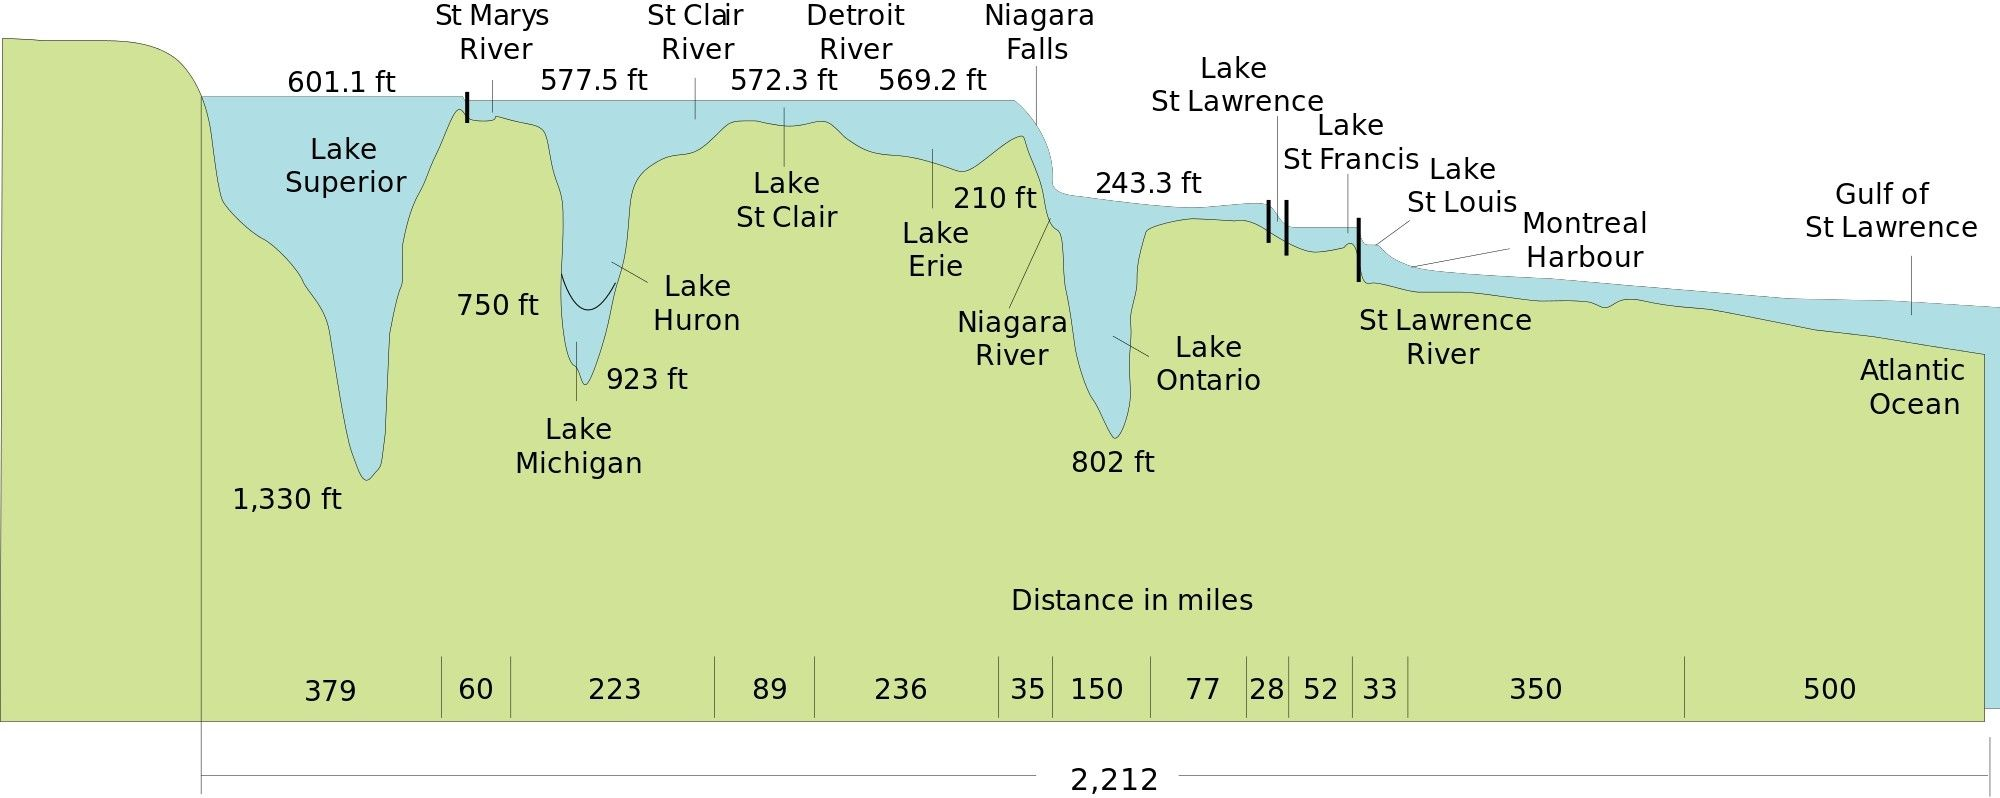 Depth Profile Of The Great Lakes